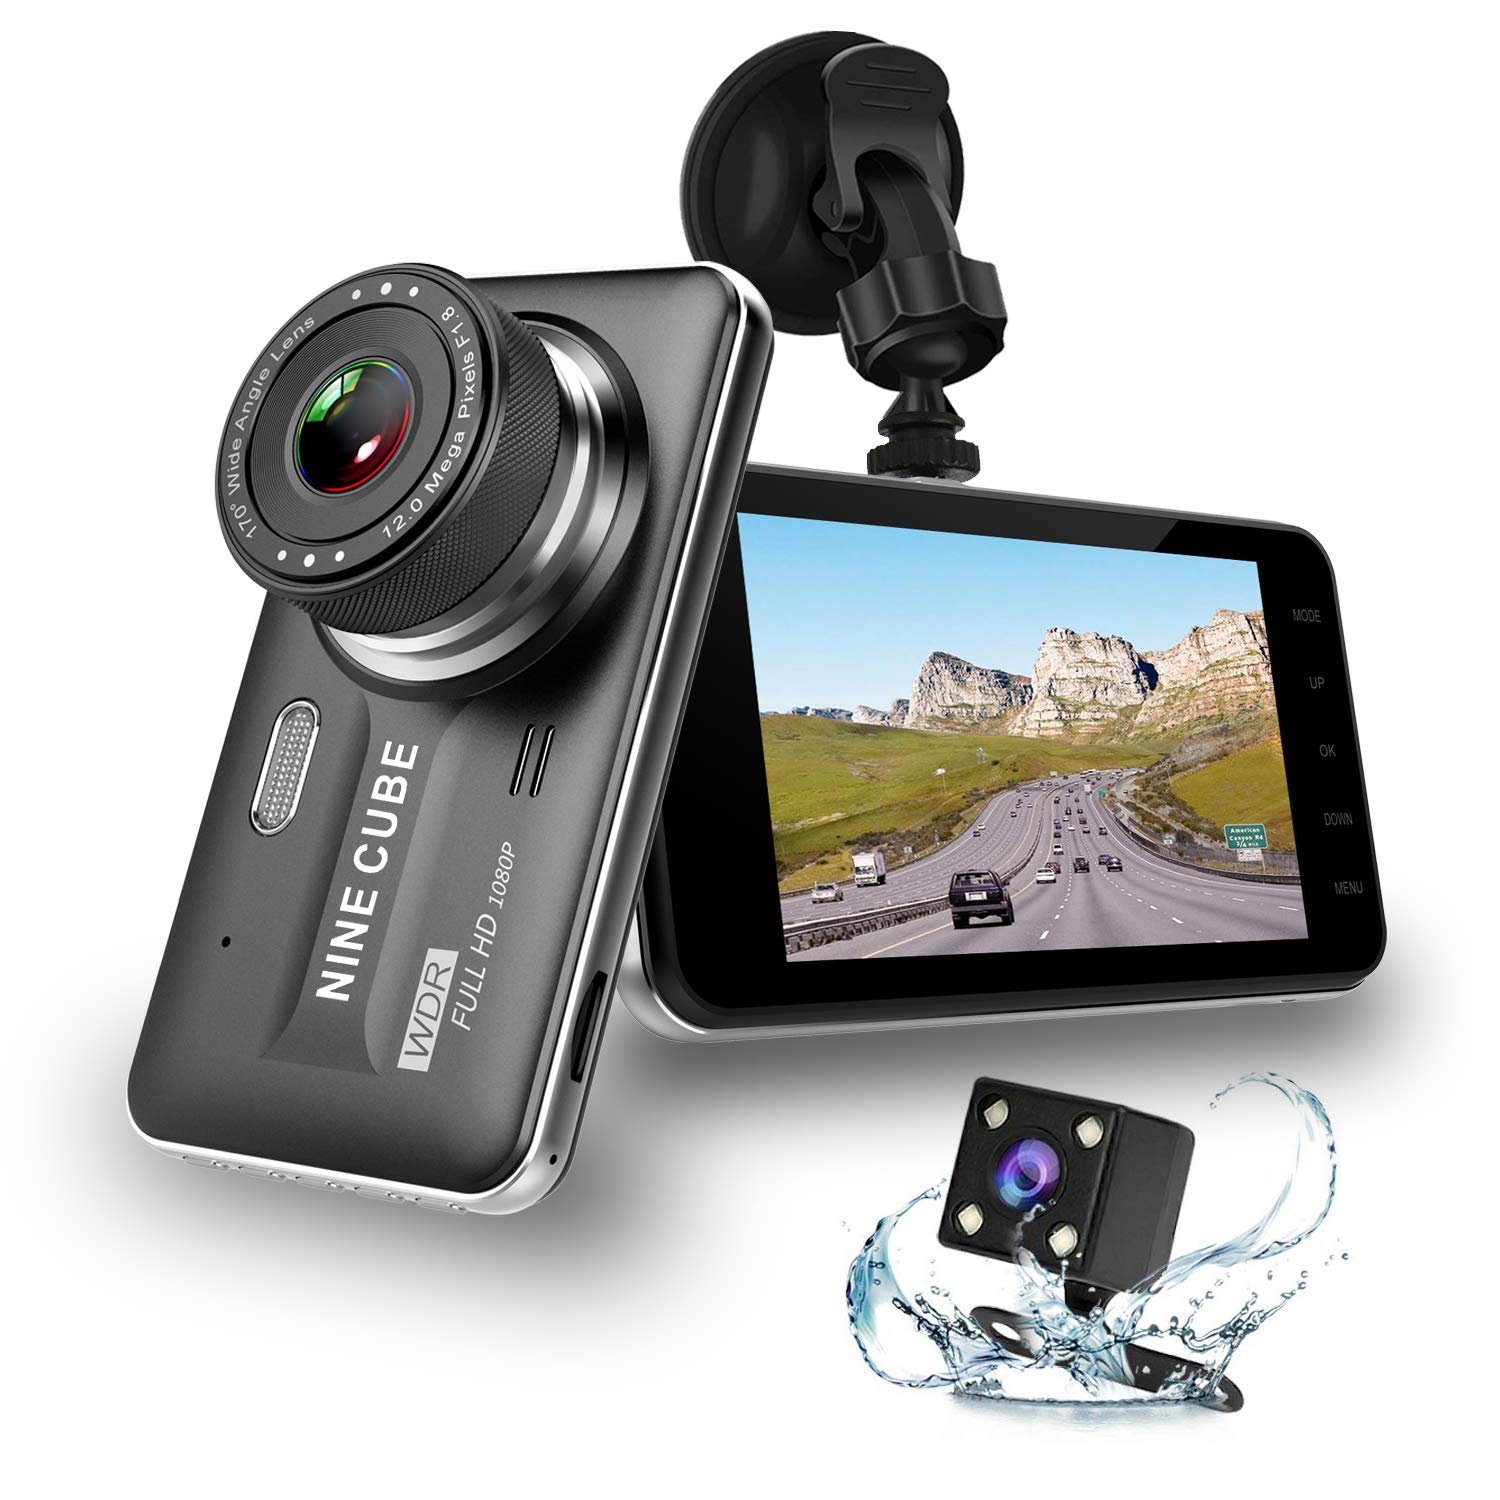 Dual Dash Cam Front and Rear, NINE CUBE 1080p HD Driving Recorder,Car DVR Dashboard Camera, 4'' IPS Screen, 170° Super Wide Angle, G Sensor, Loop Recording, Parking Monitor, Motion Detection